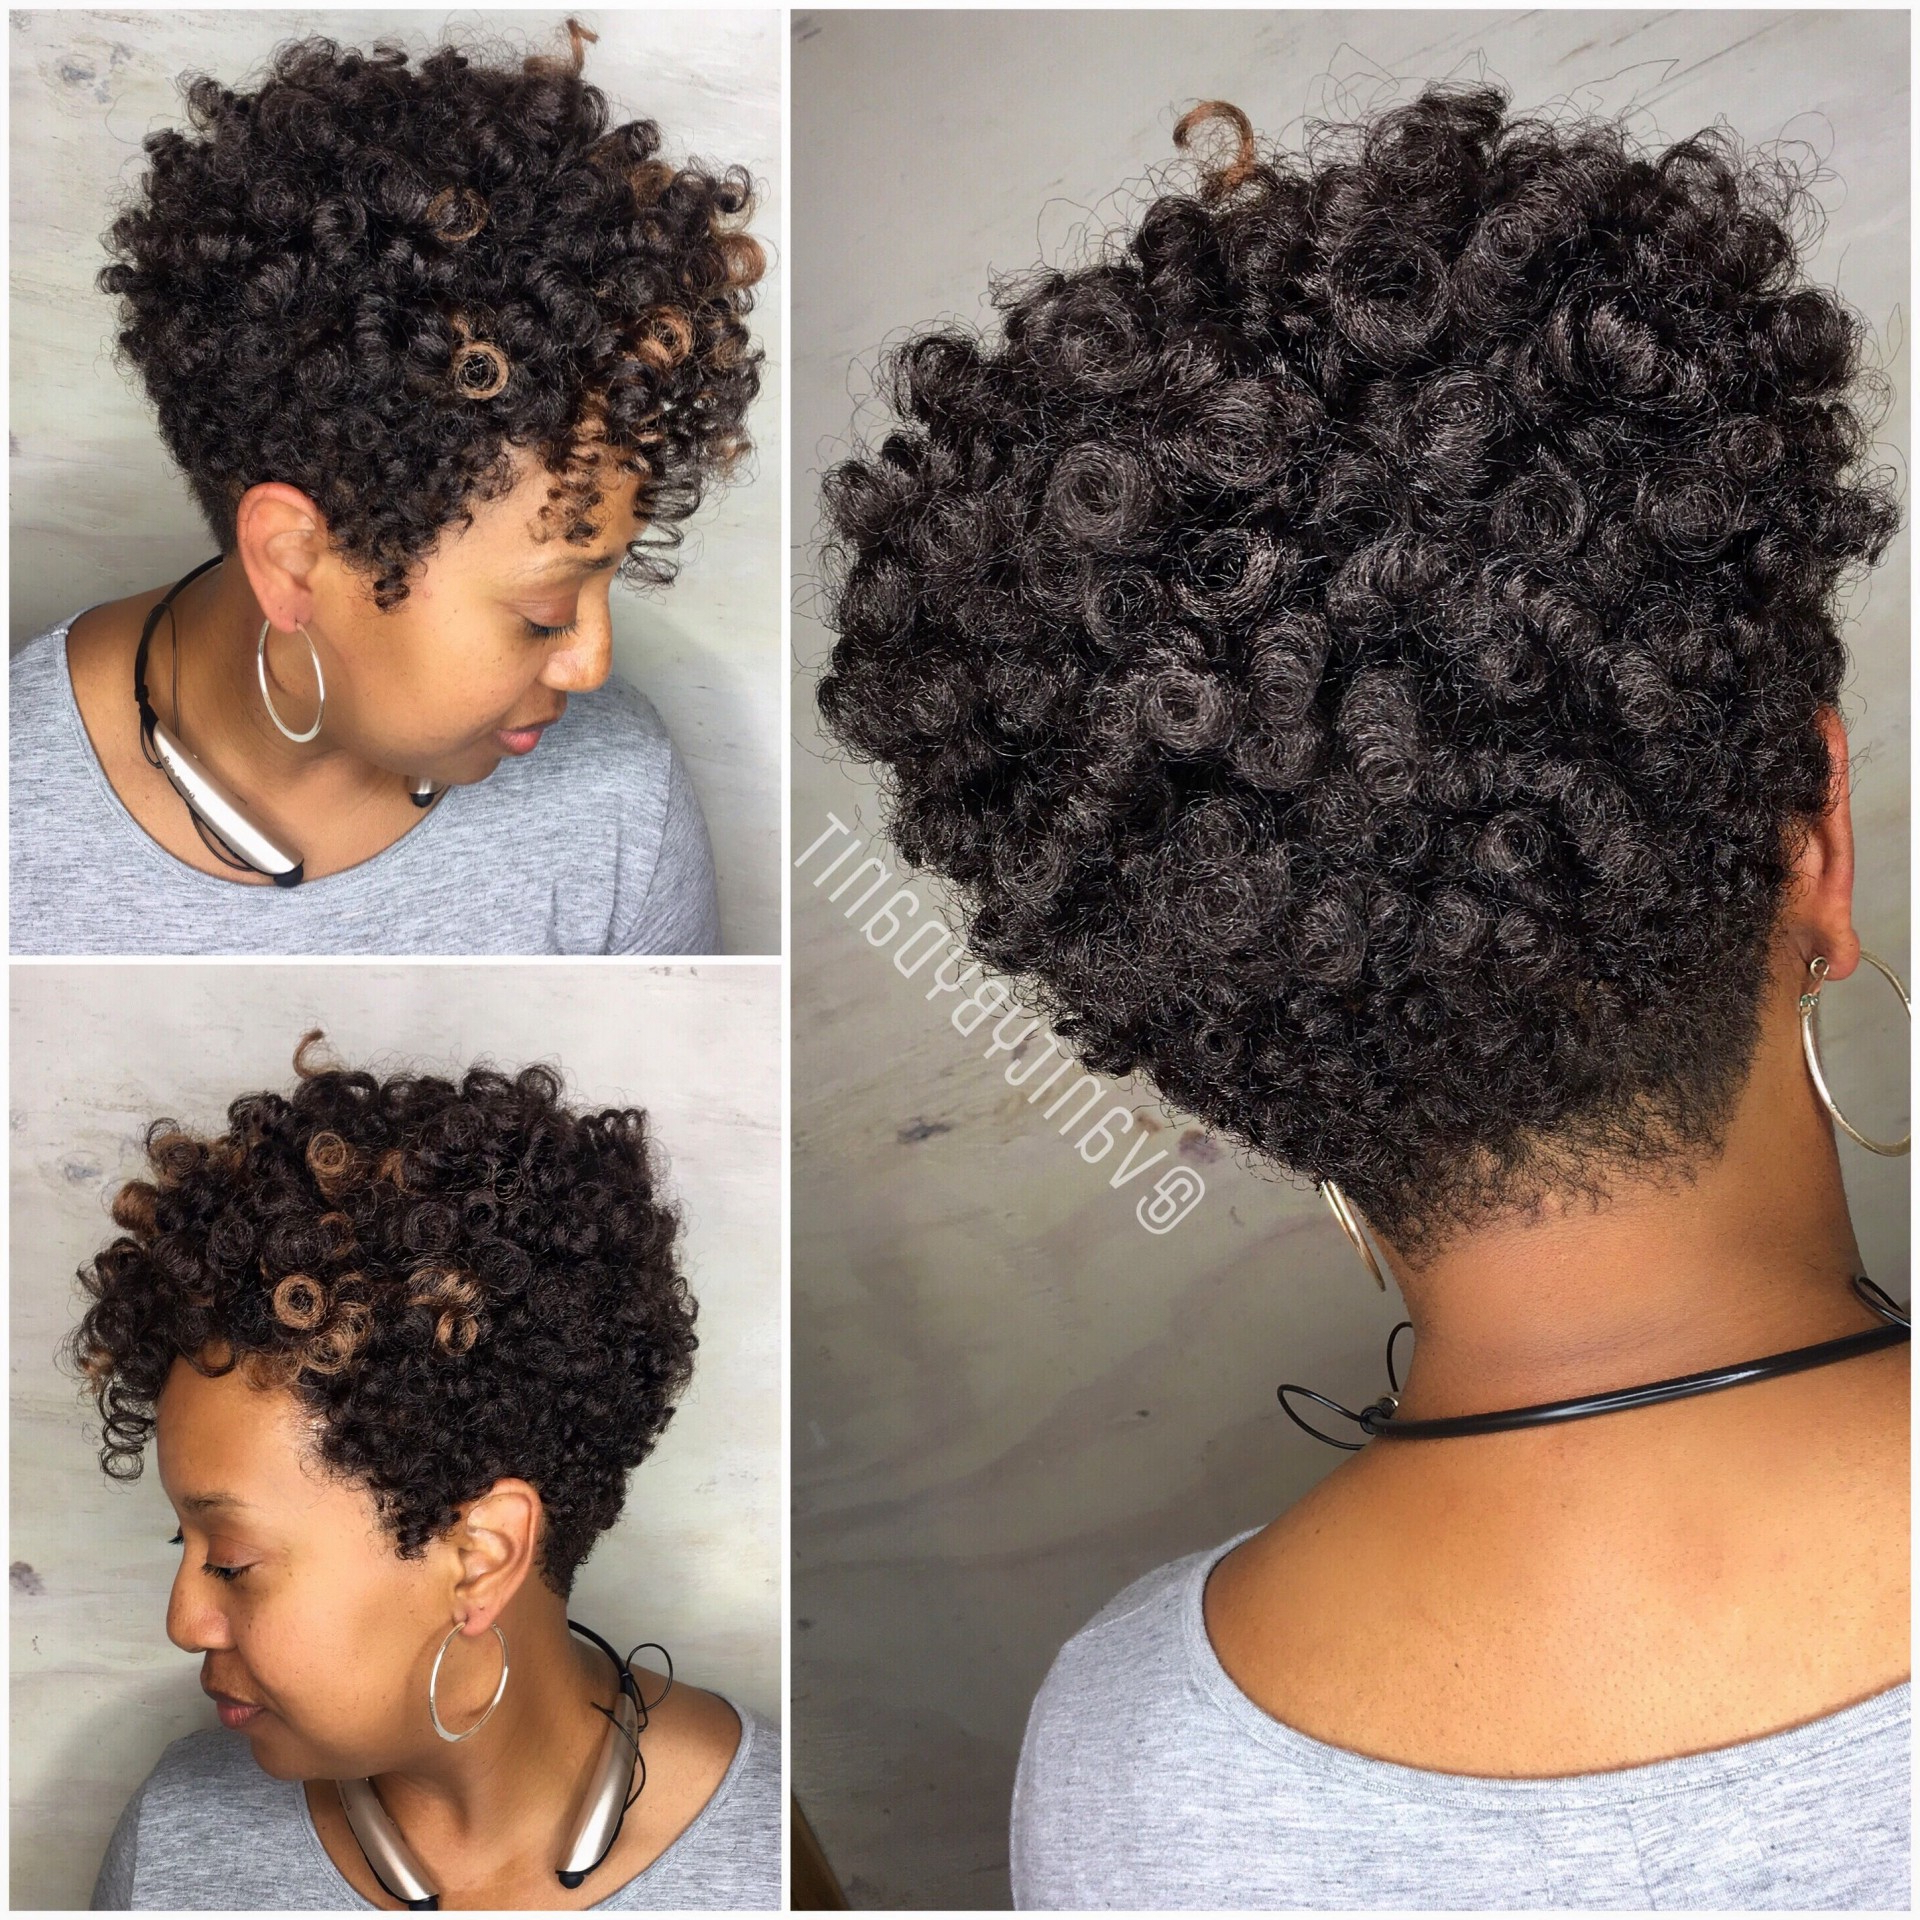 002 Short Crochet Braids Phenomenal Hairstyles Images Of Throughout Most Up To Date Short Stacked Bob Micro Braids (View 1 of 20)